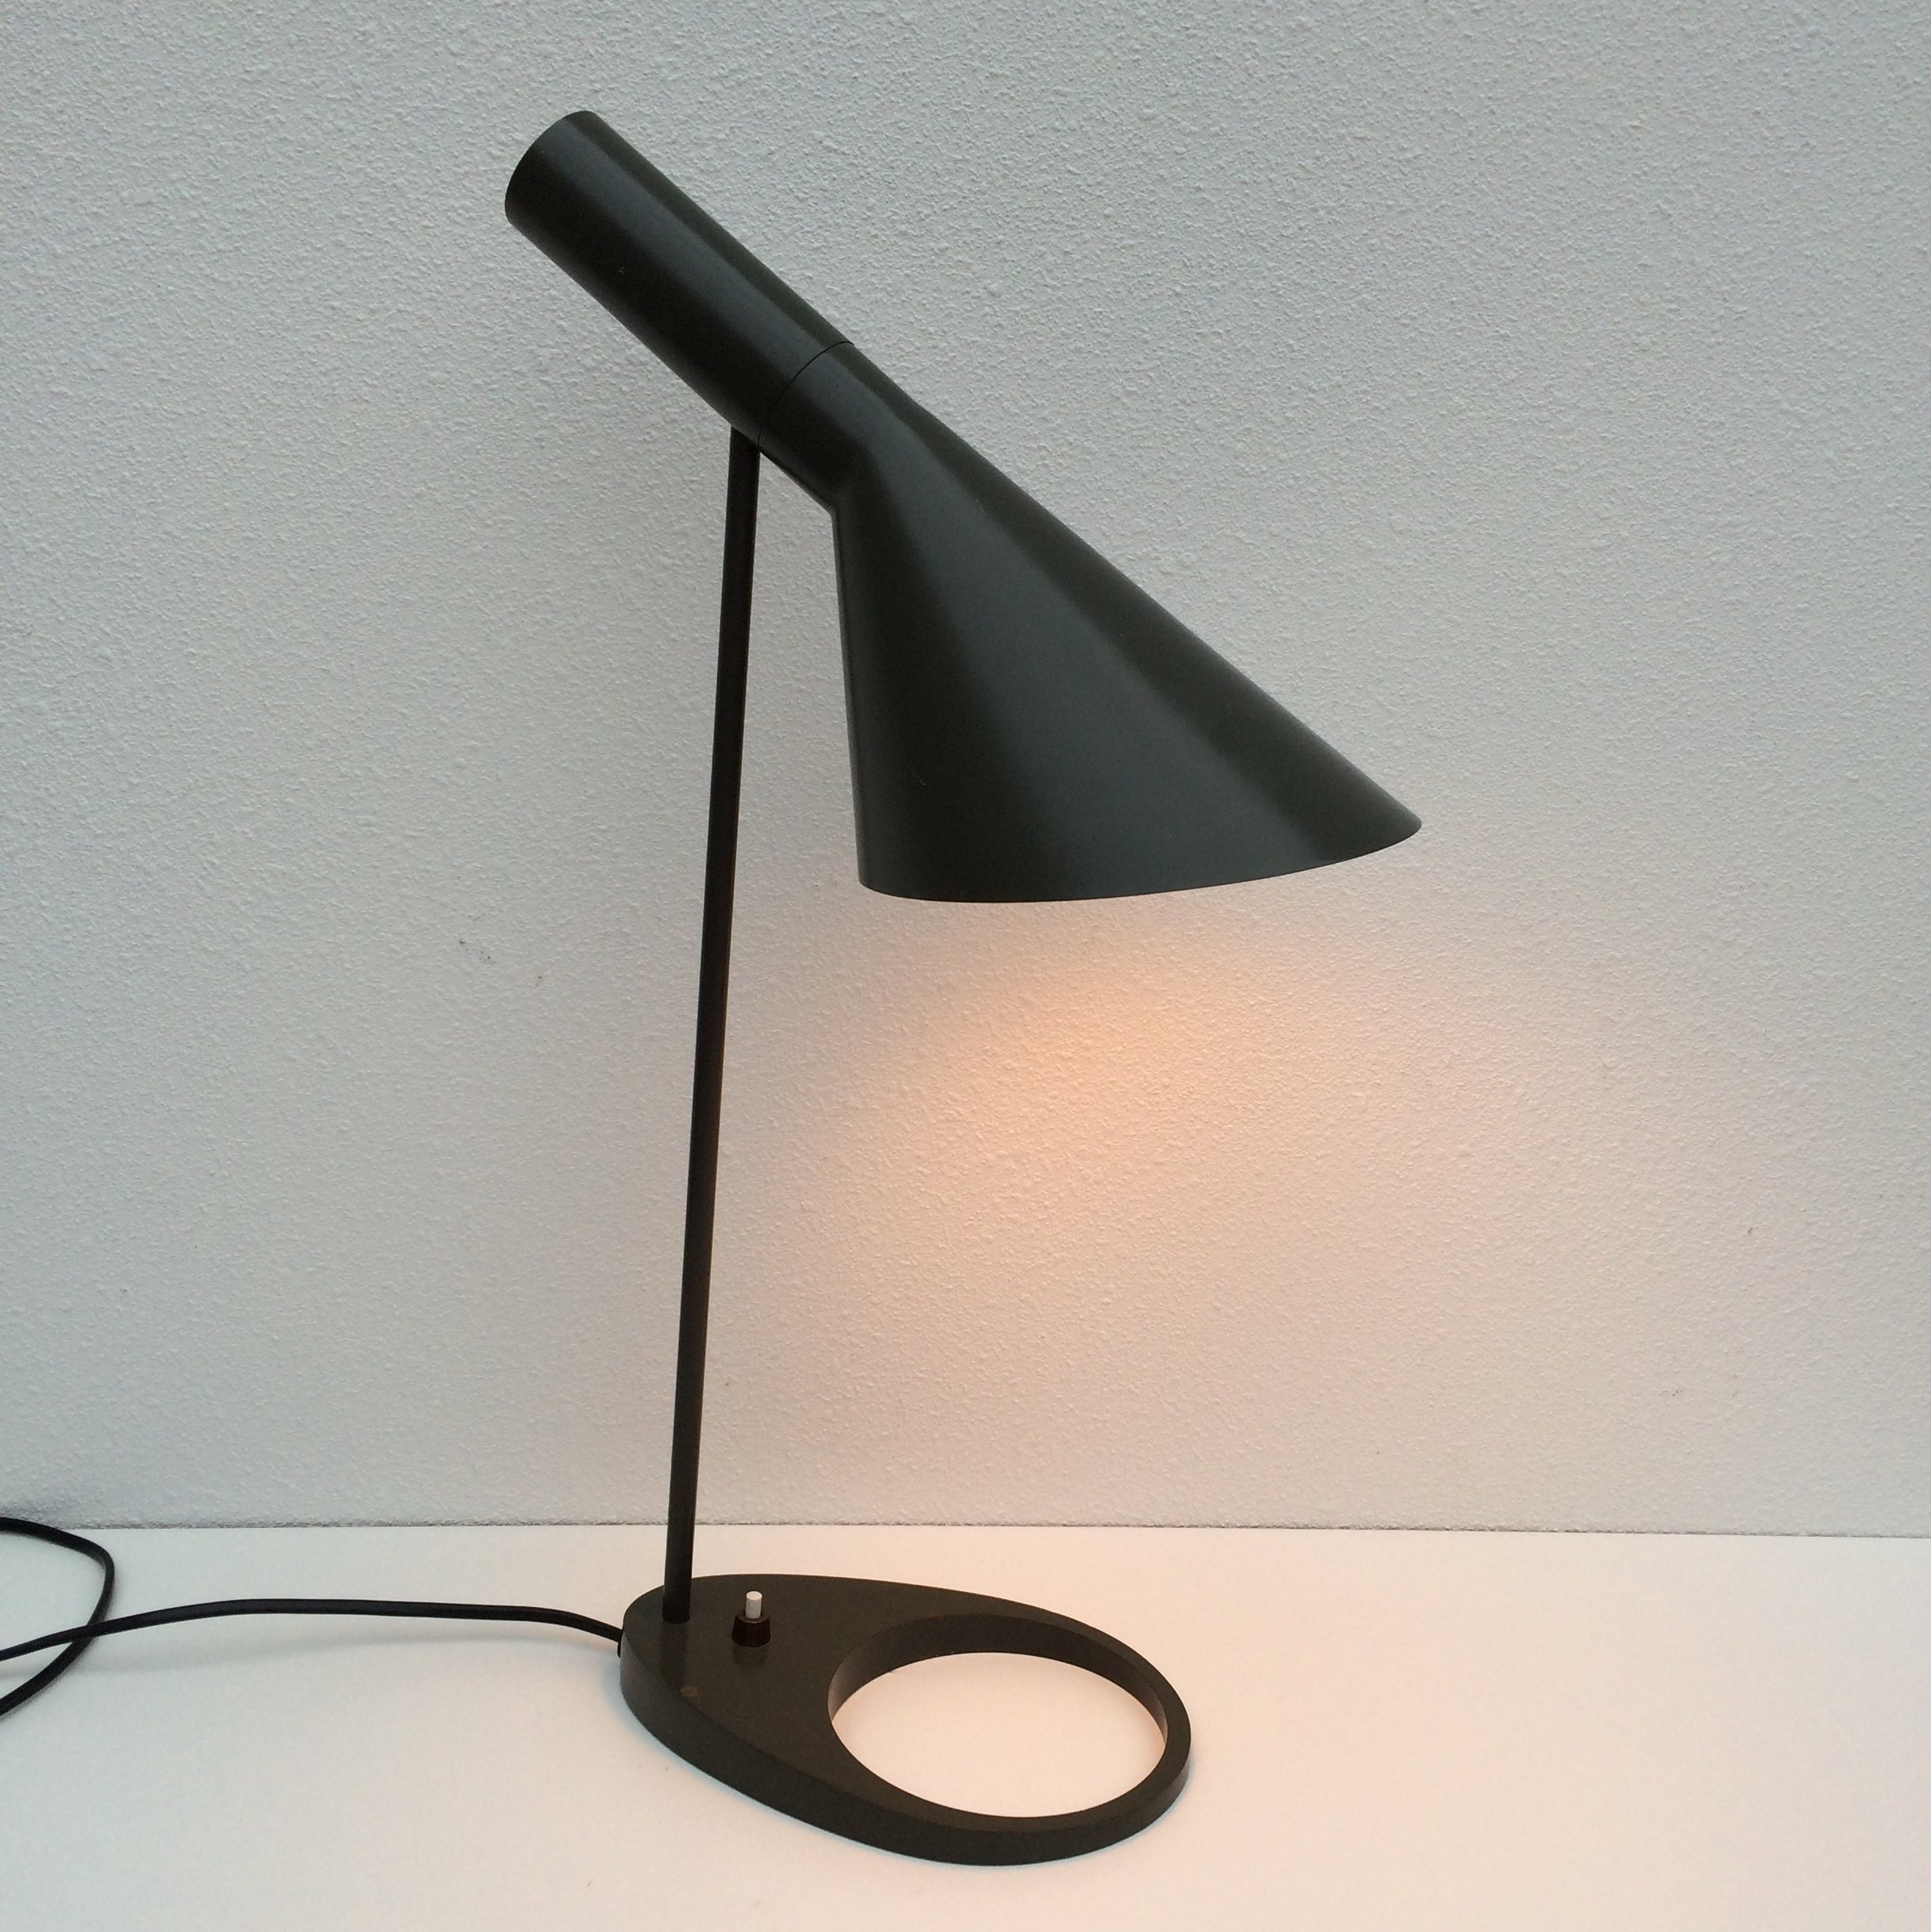 aj visor desk lamp by arne jacobsen for louis poulsen. Black Bedroom Furniture Sets. Home Design Ideas